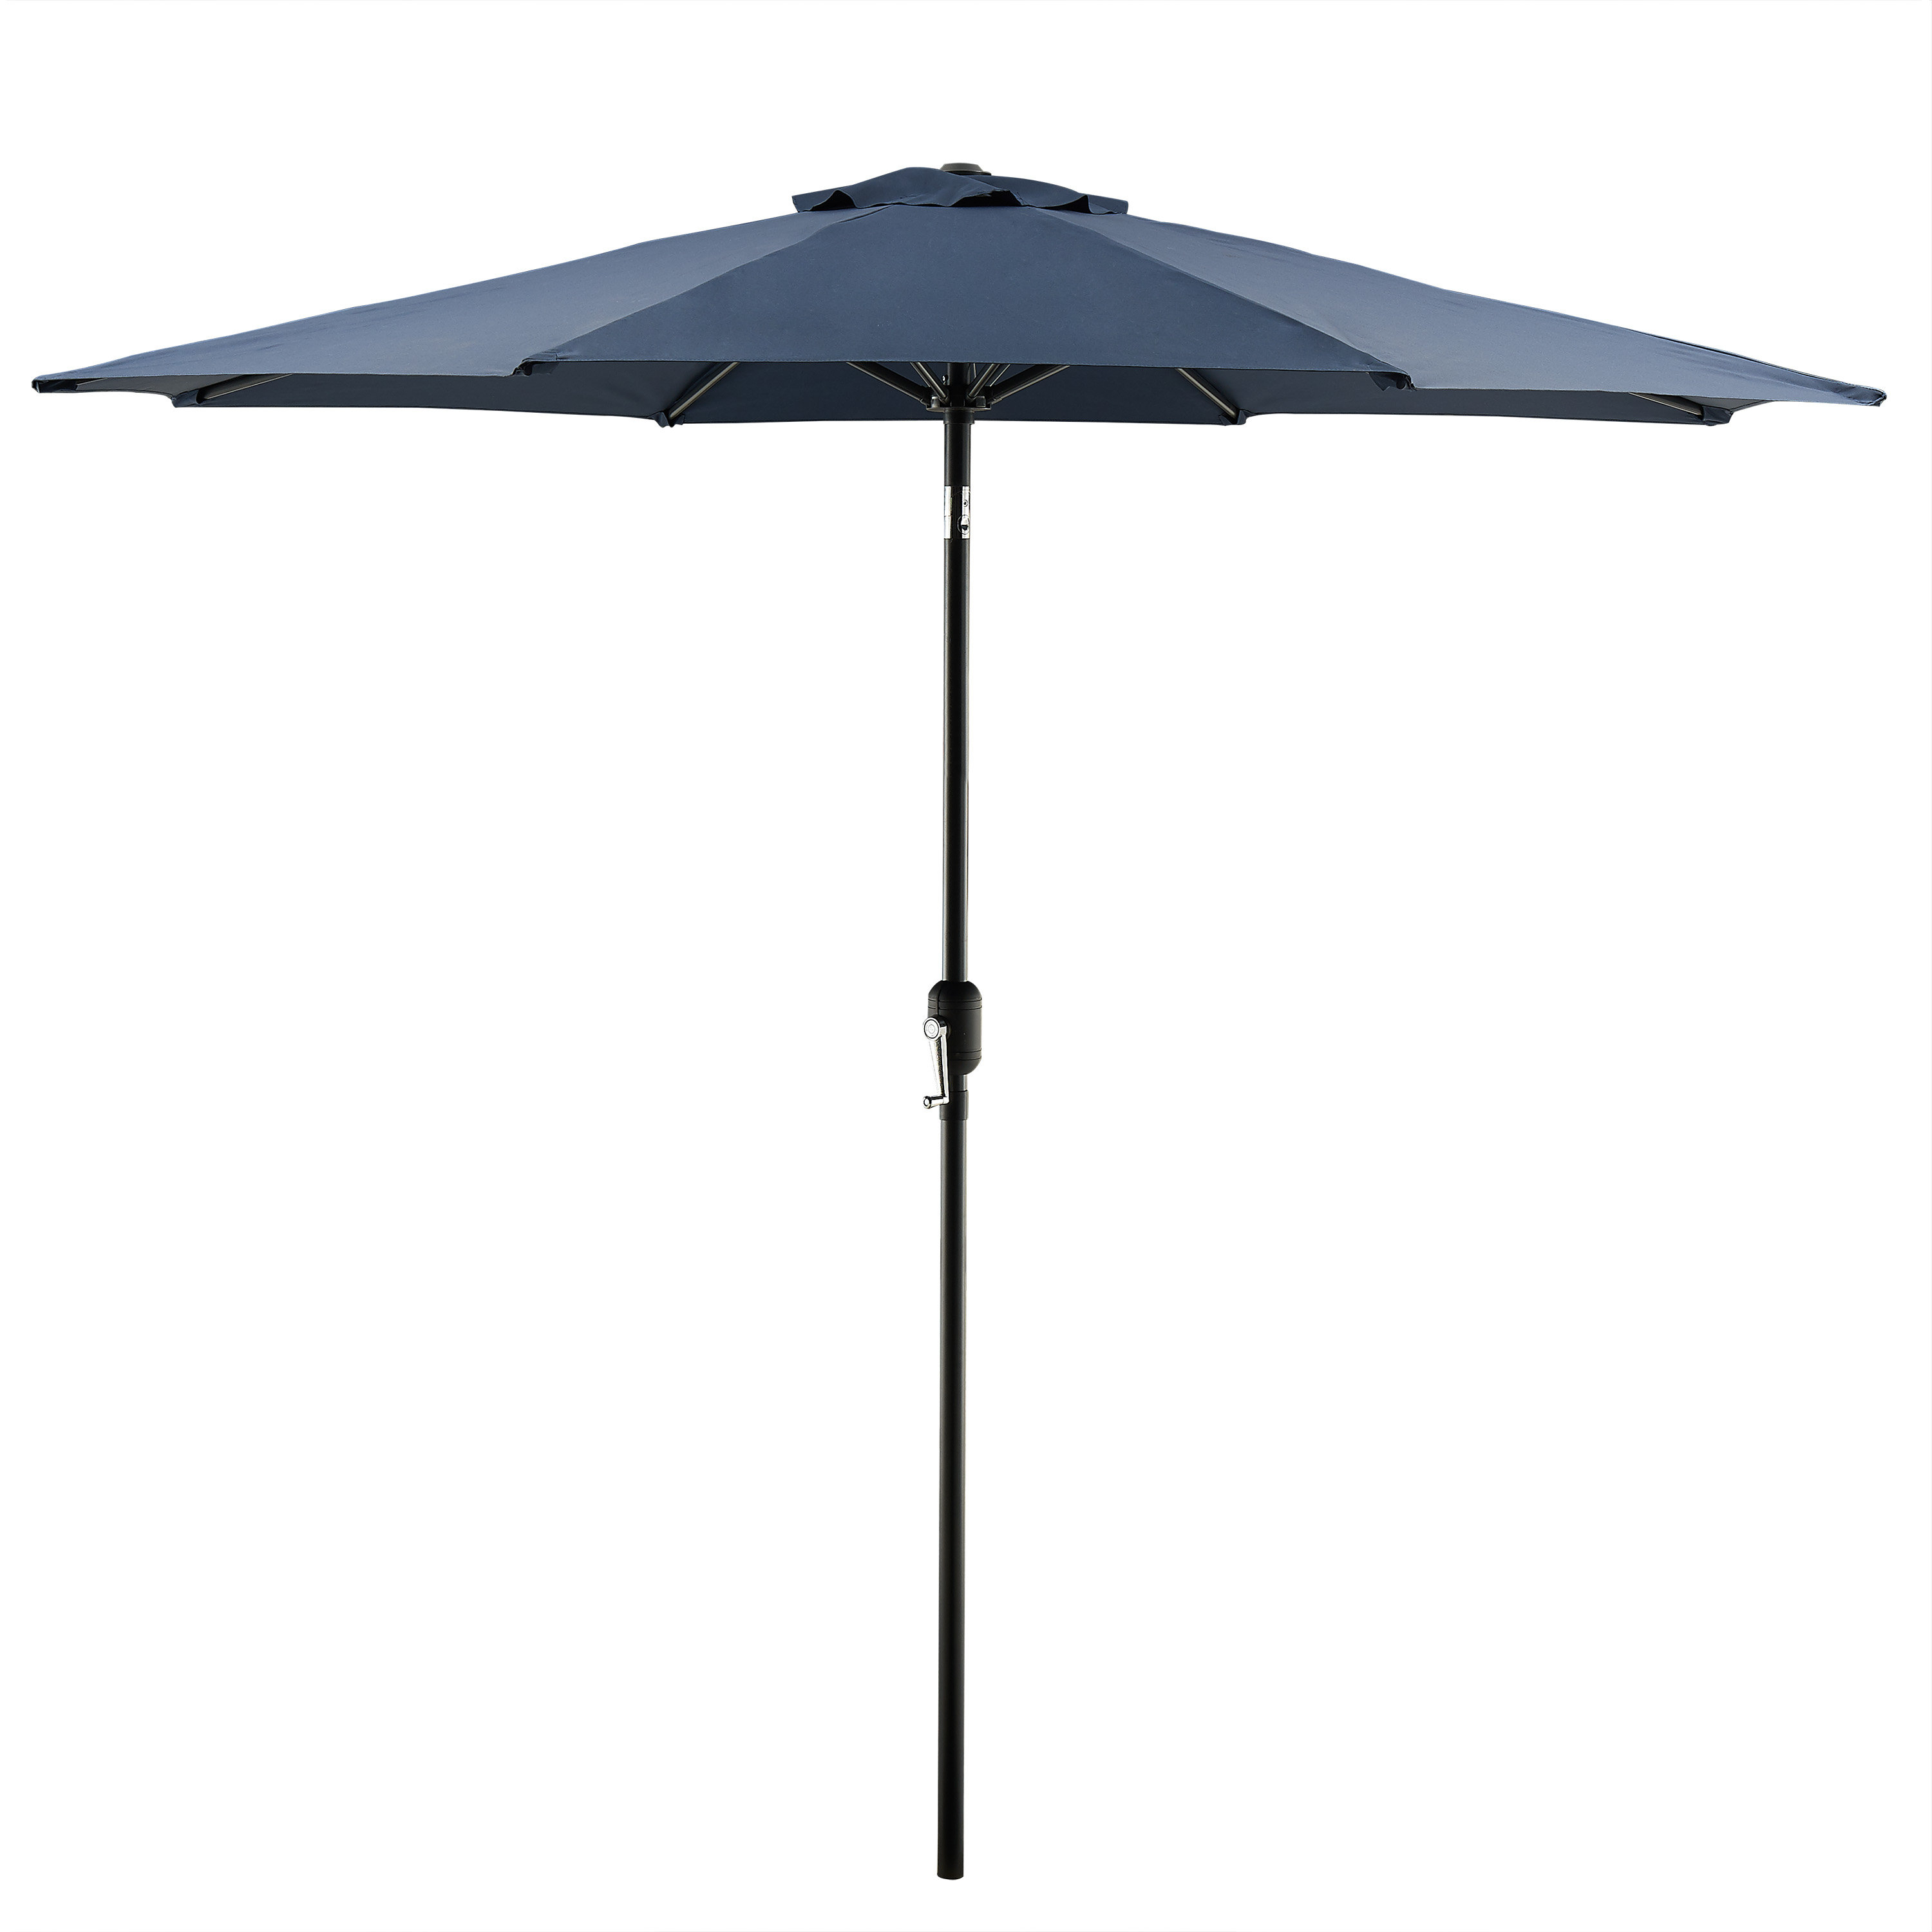 Popular Kelton Market Umbrellas For Hapeville 9' Market Umbrella (View 9 of 20)